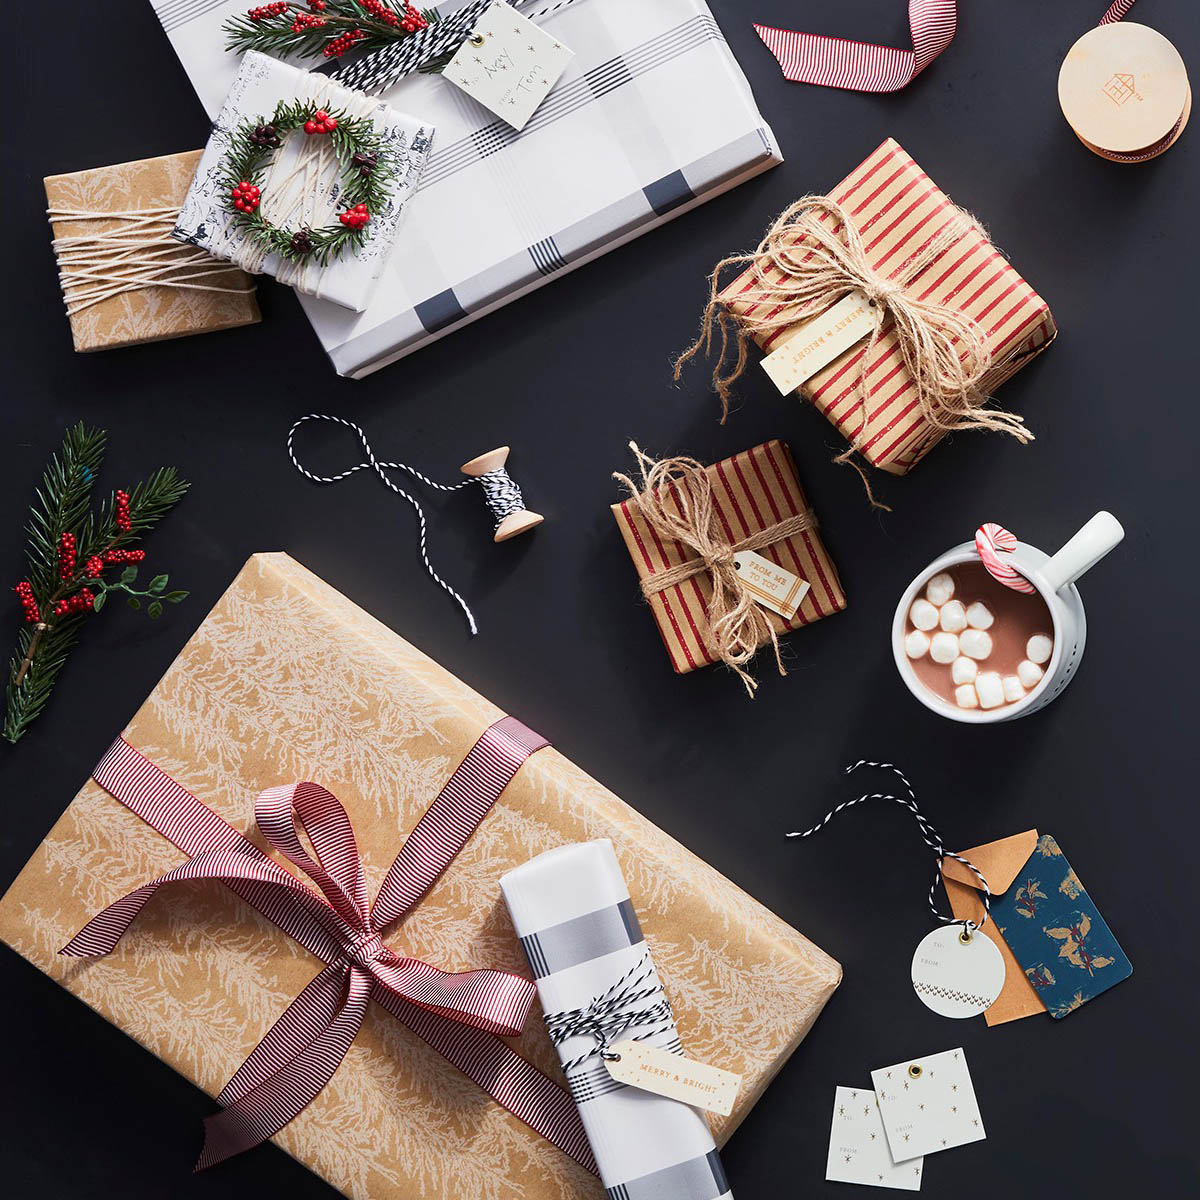 Wrapped gifts with gift tags and a mug of hot chocolate